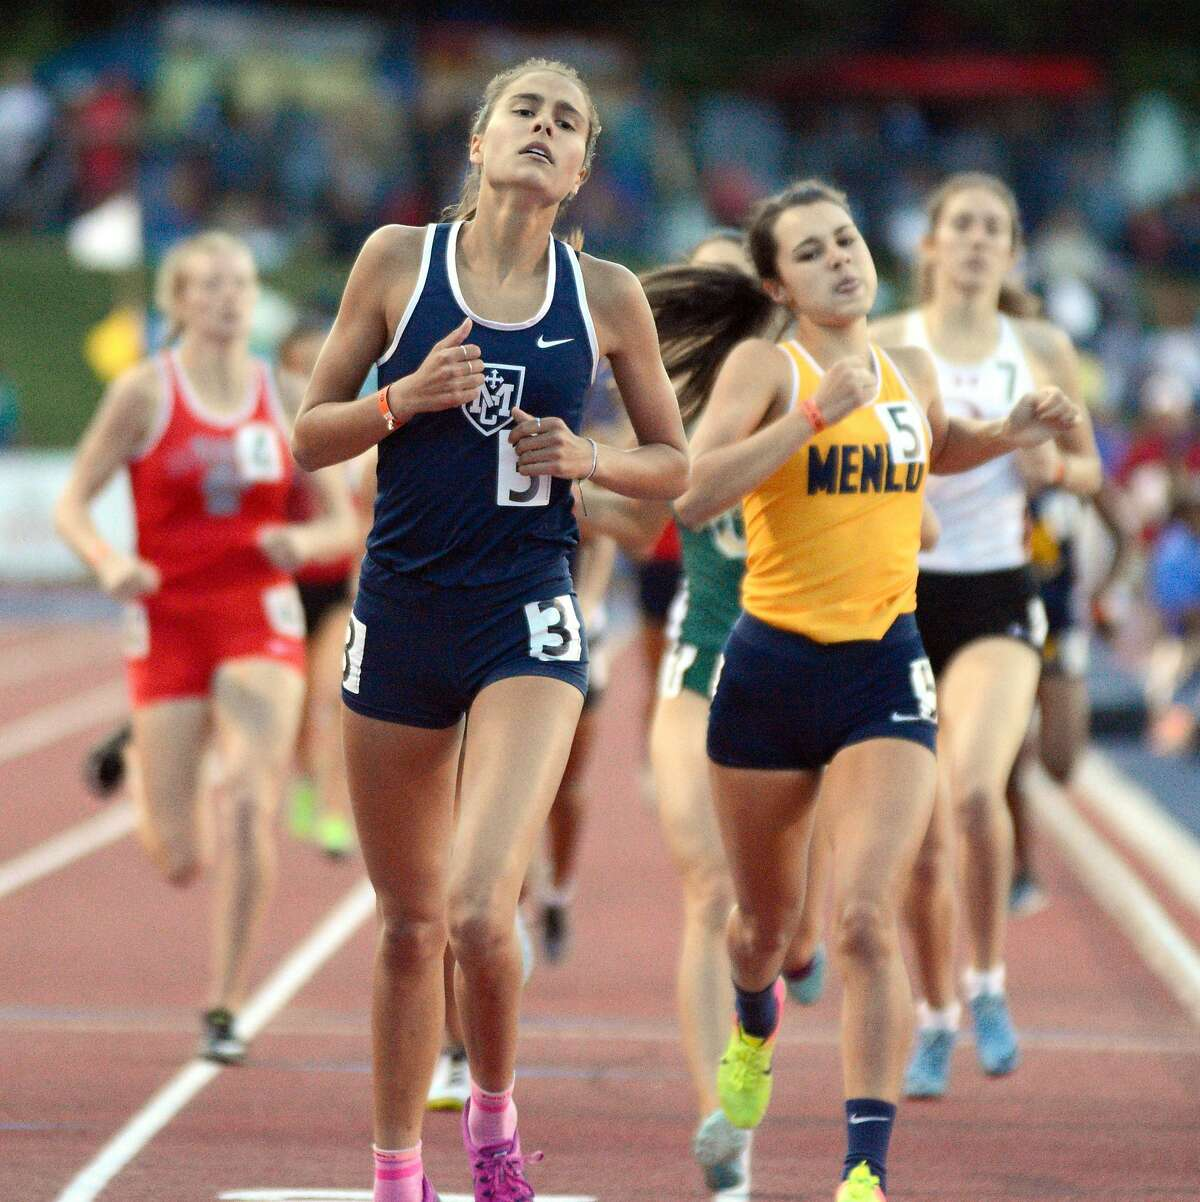 Samantha Wallenstrom of Marin Catholic-Kentfield won the 2019 state 800-meter title as a sophomore in 2:08.78, but has a best this season of only 2:23.66.